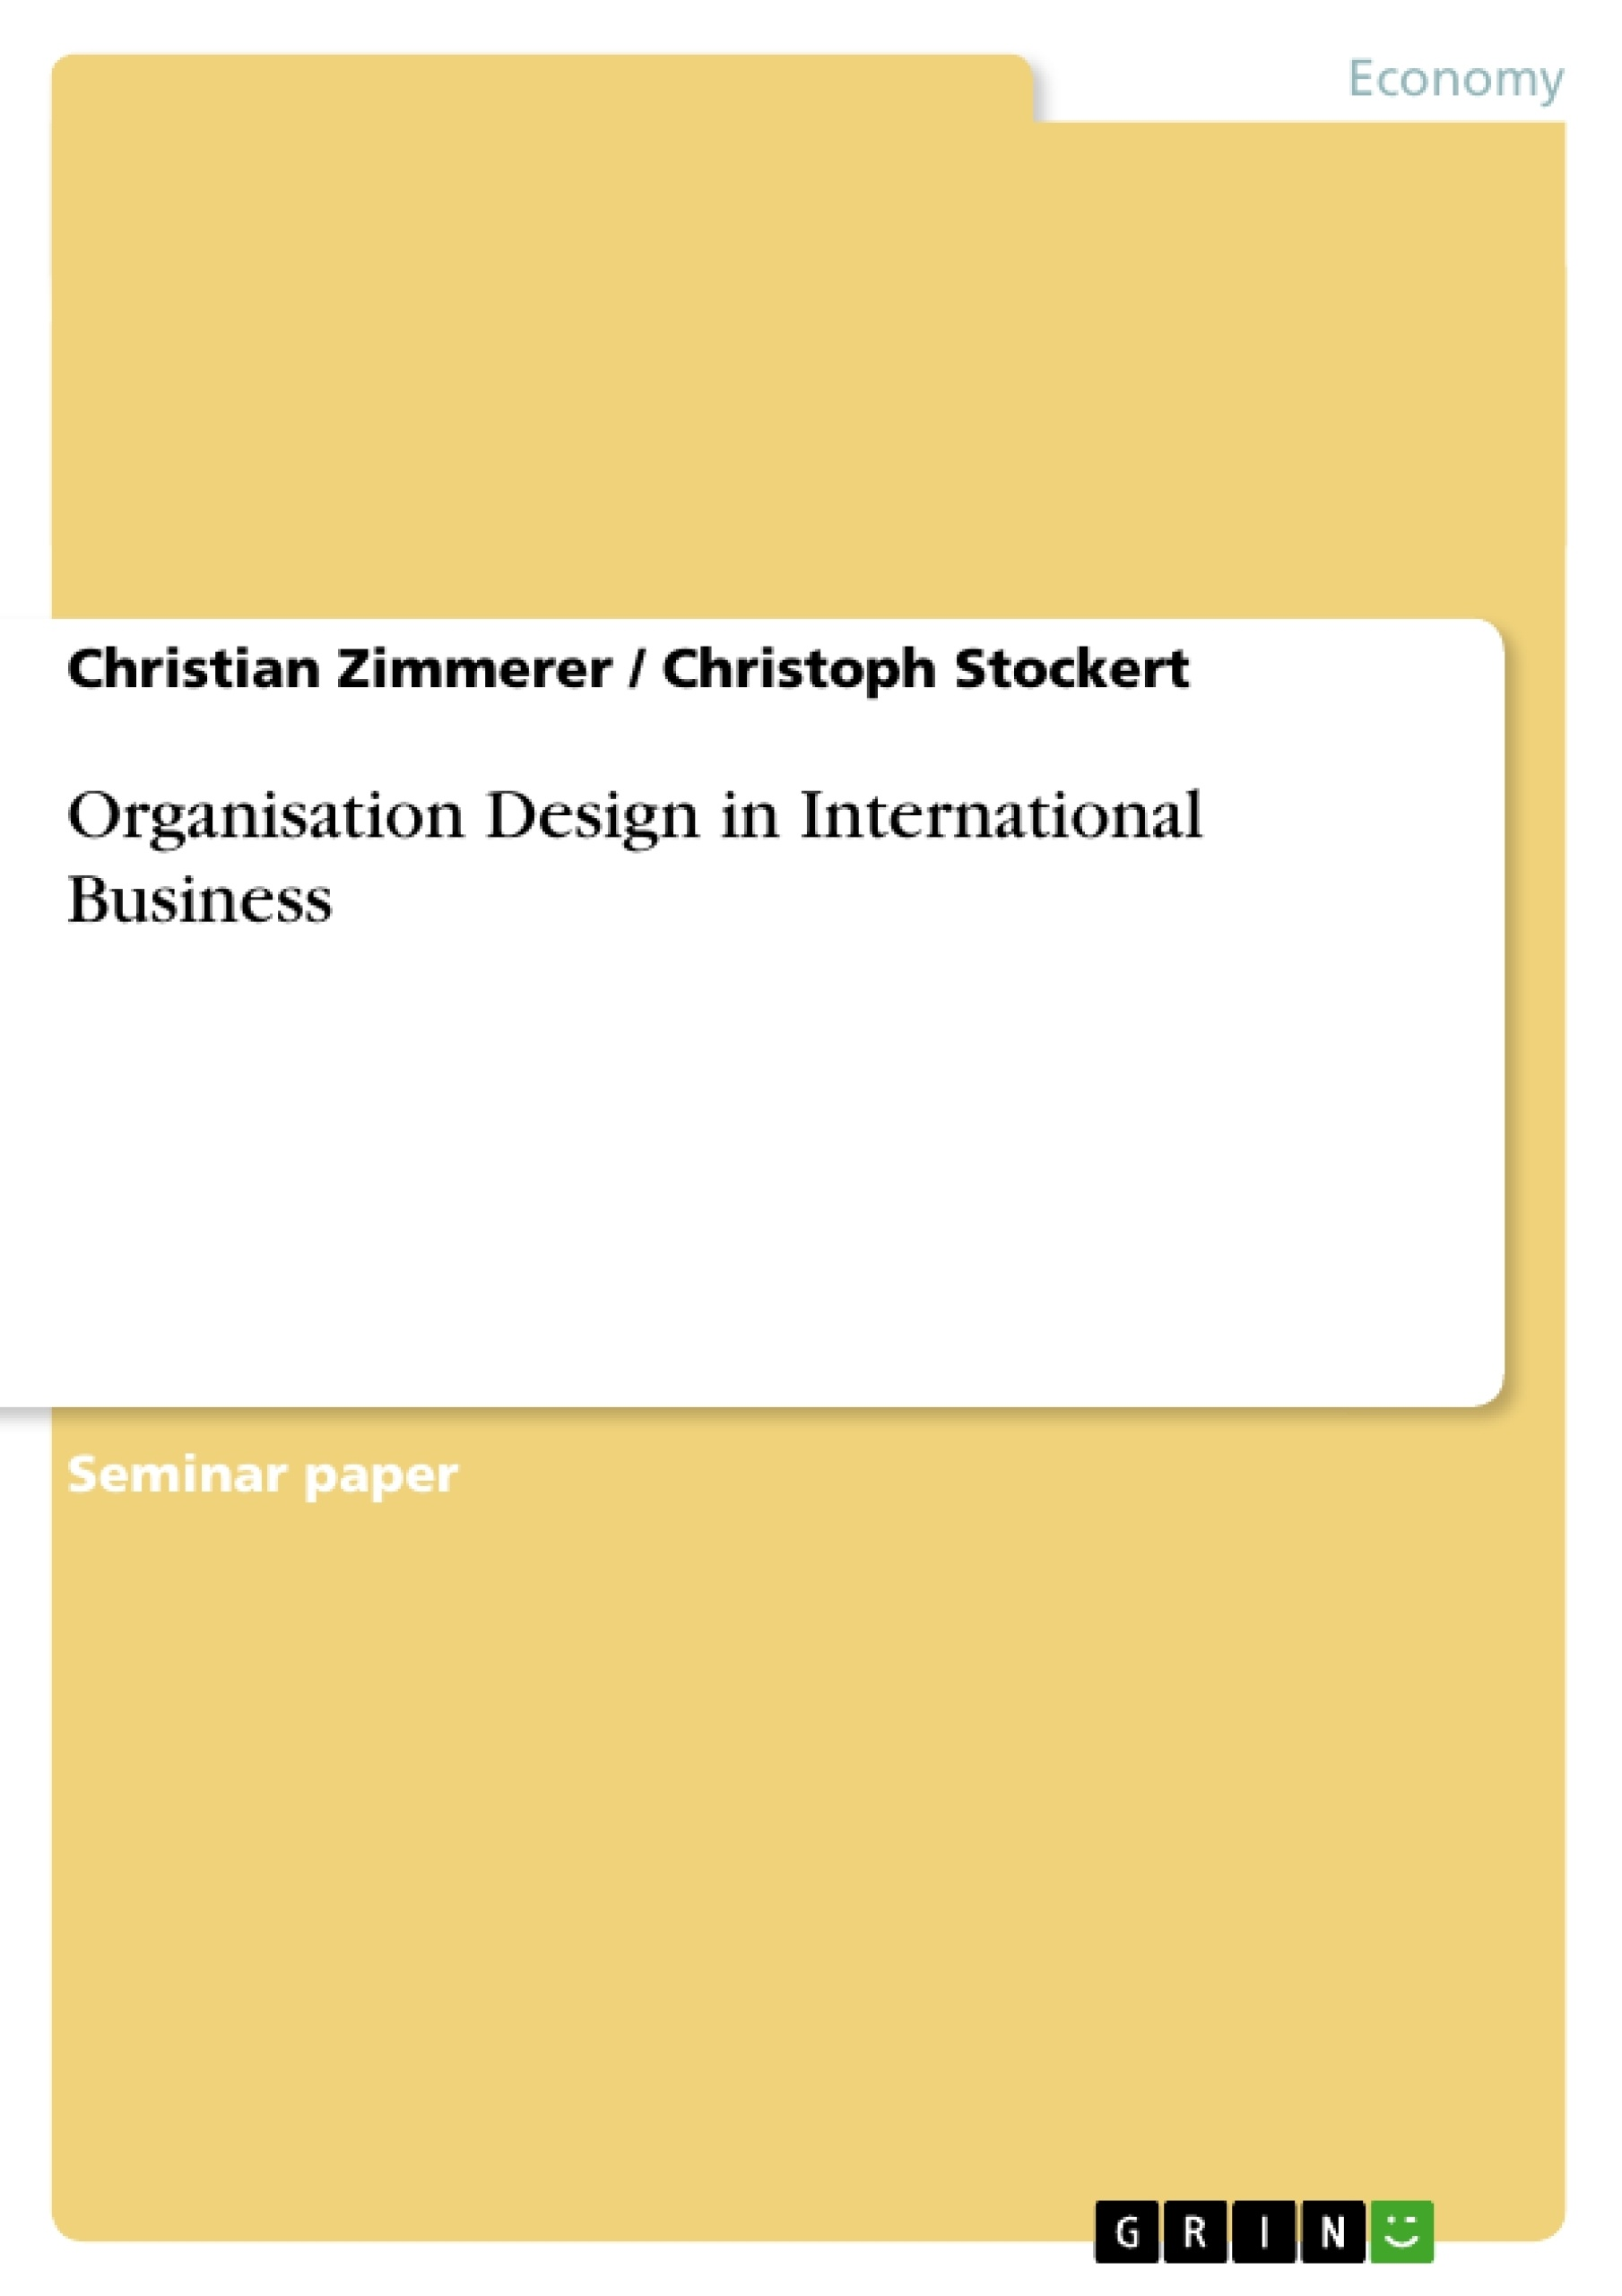 organisation design in international business publish your organisation design in international business publish your master s thesis bachelor s thesis essay or term paper